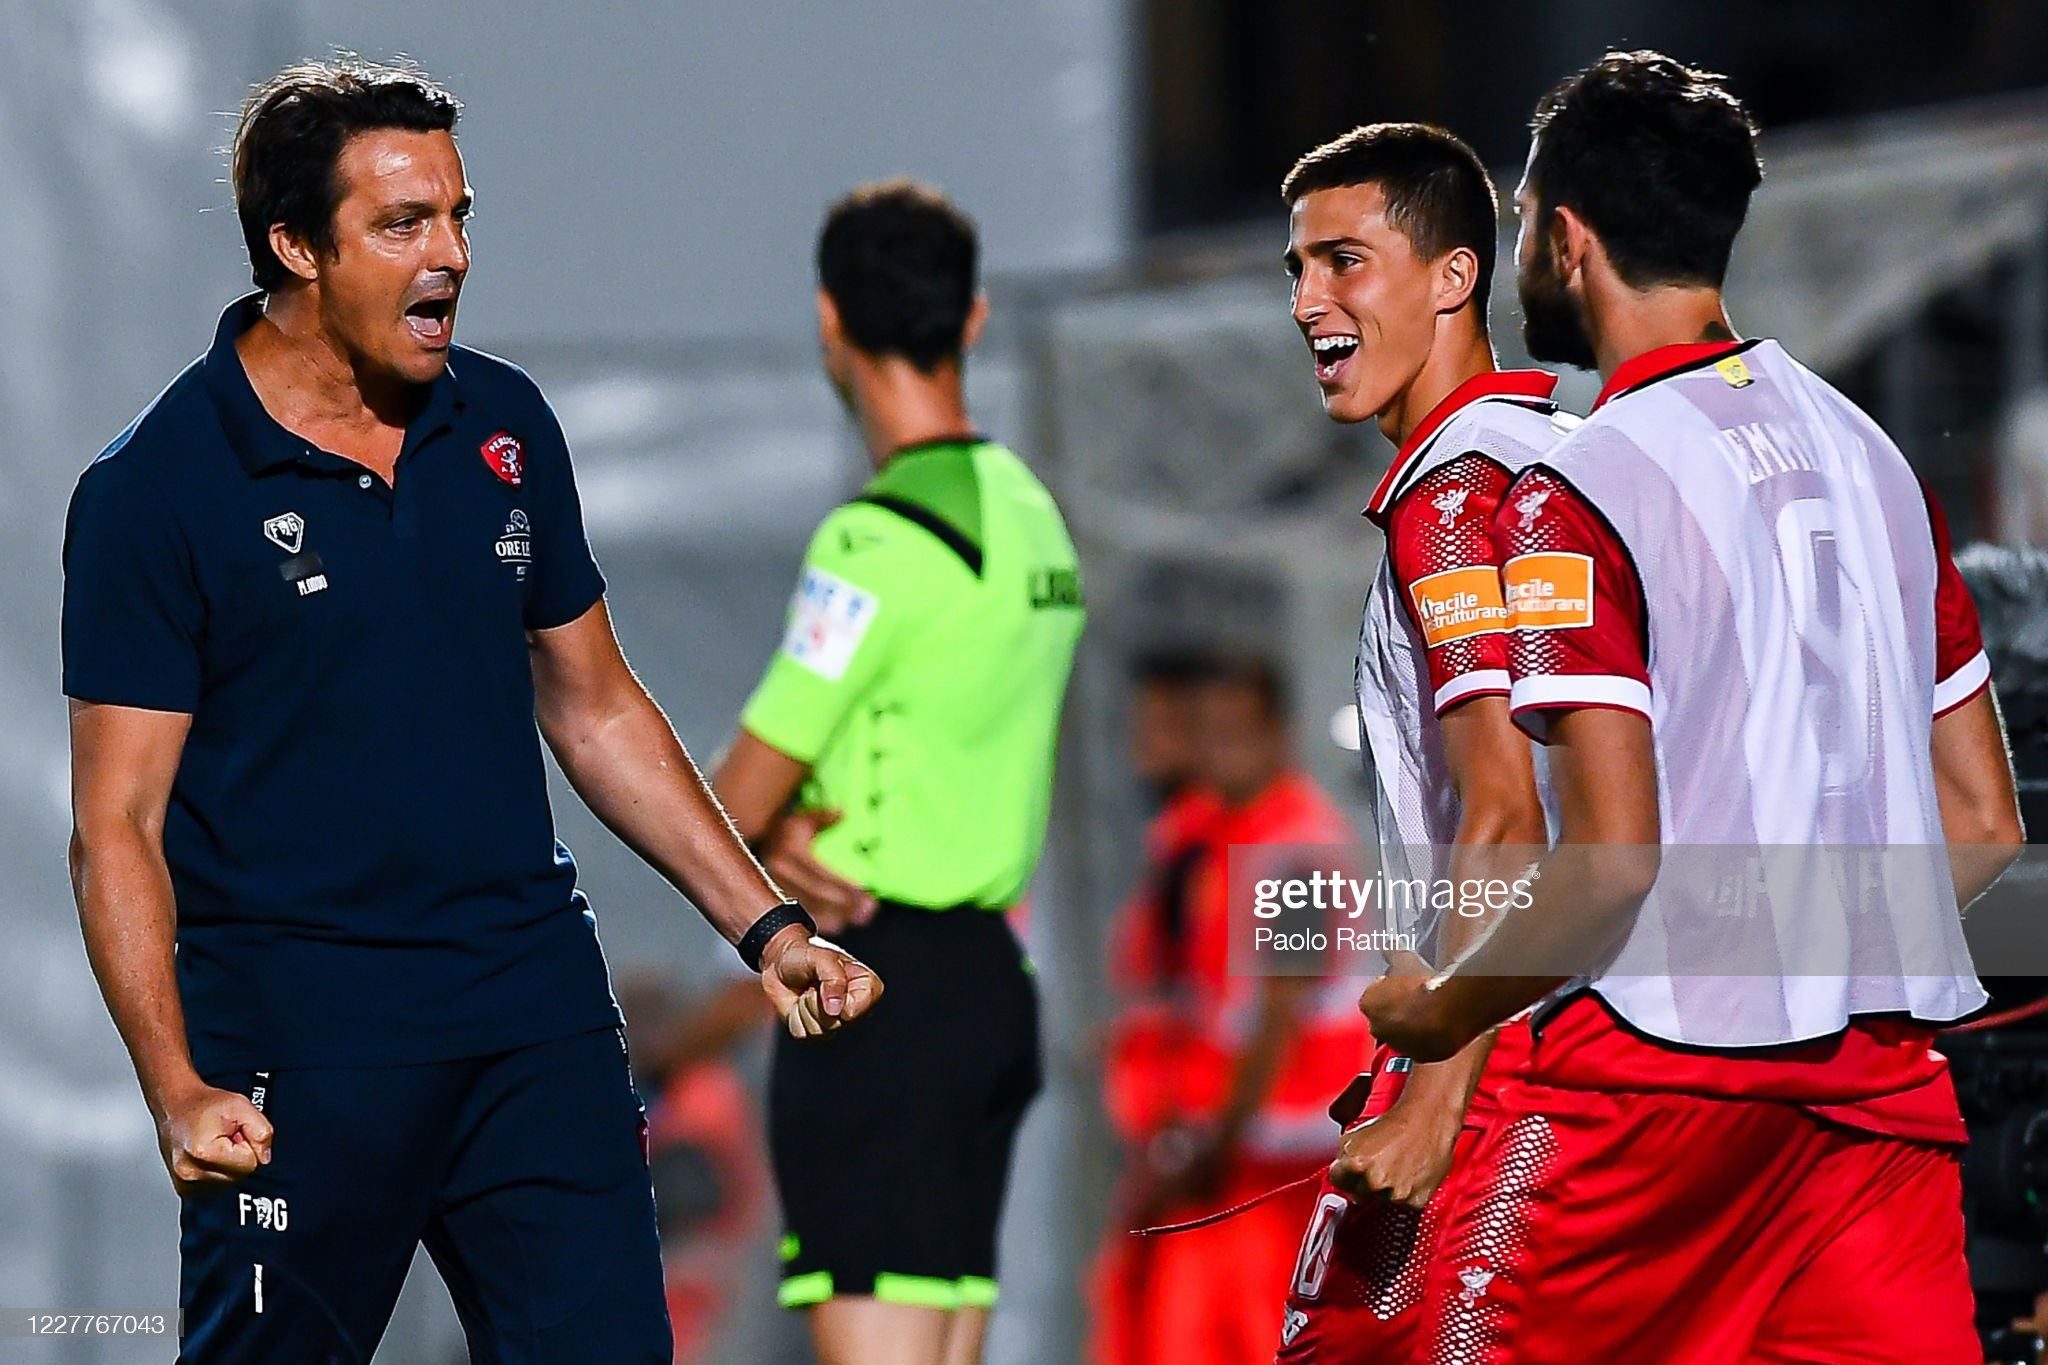 Perugia vs Trapani Preview, prediction and odds